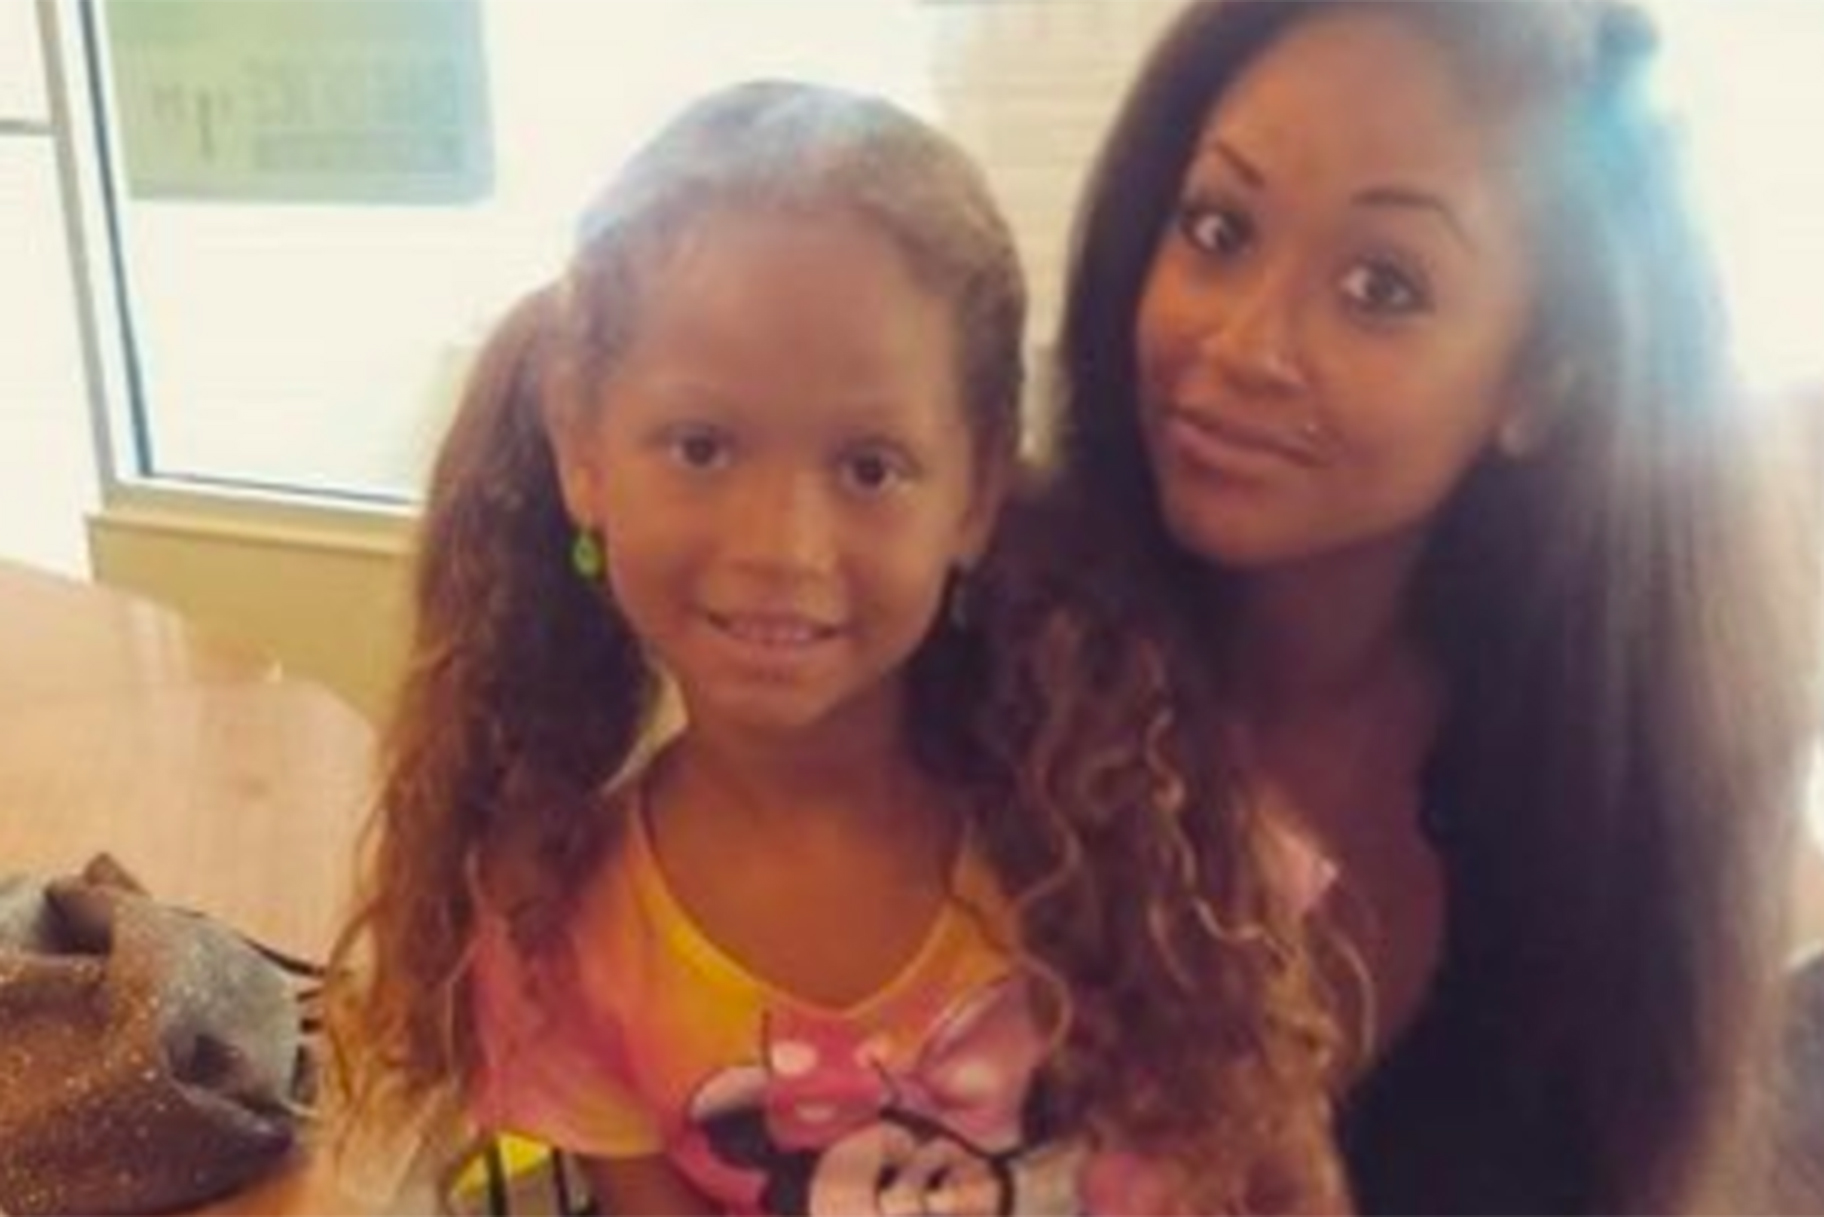 16 And Pregnant Star Valerie Fairman Dead At 23 Crime Time